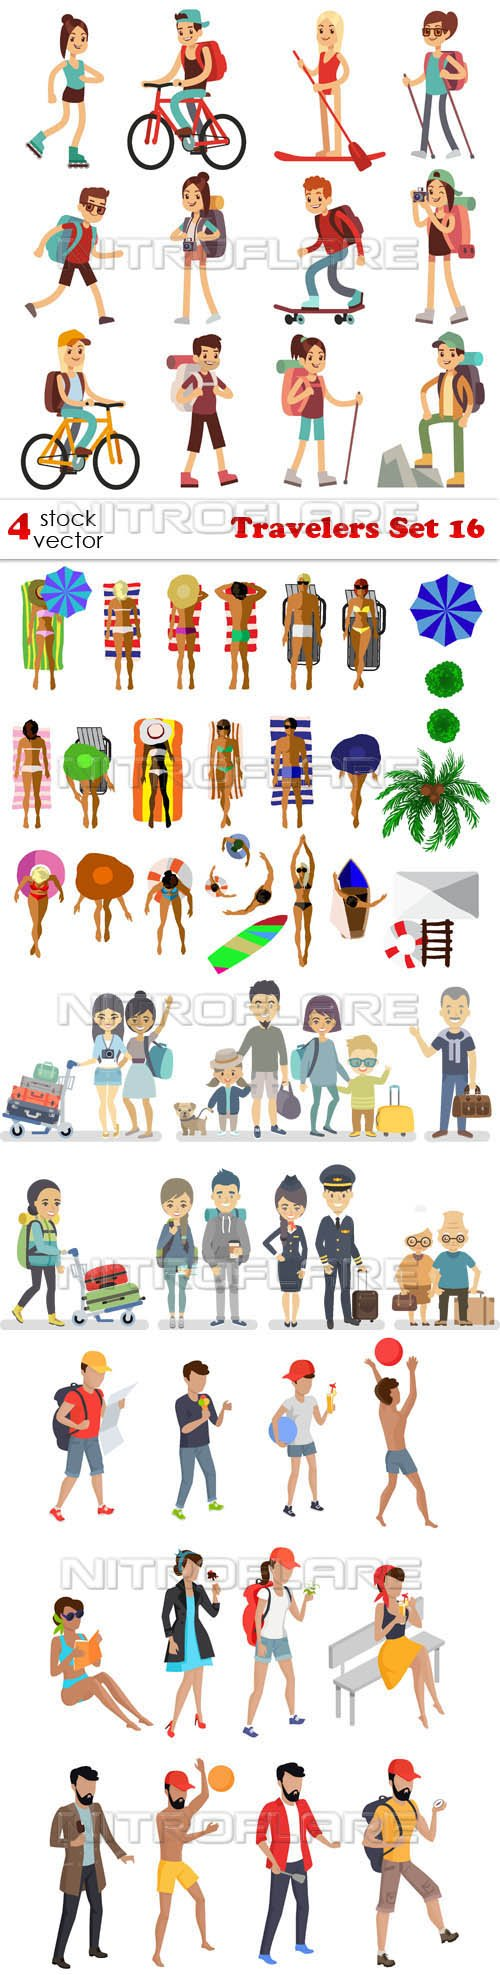 Vectors - Travelers Set 16